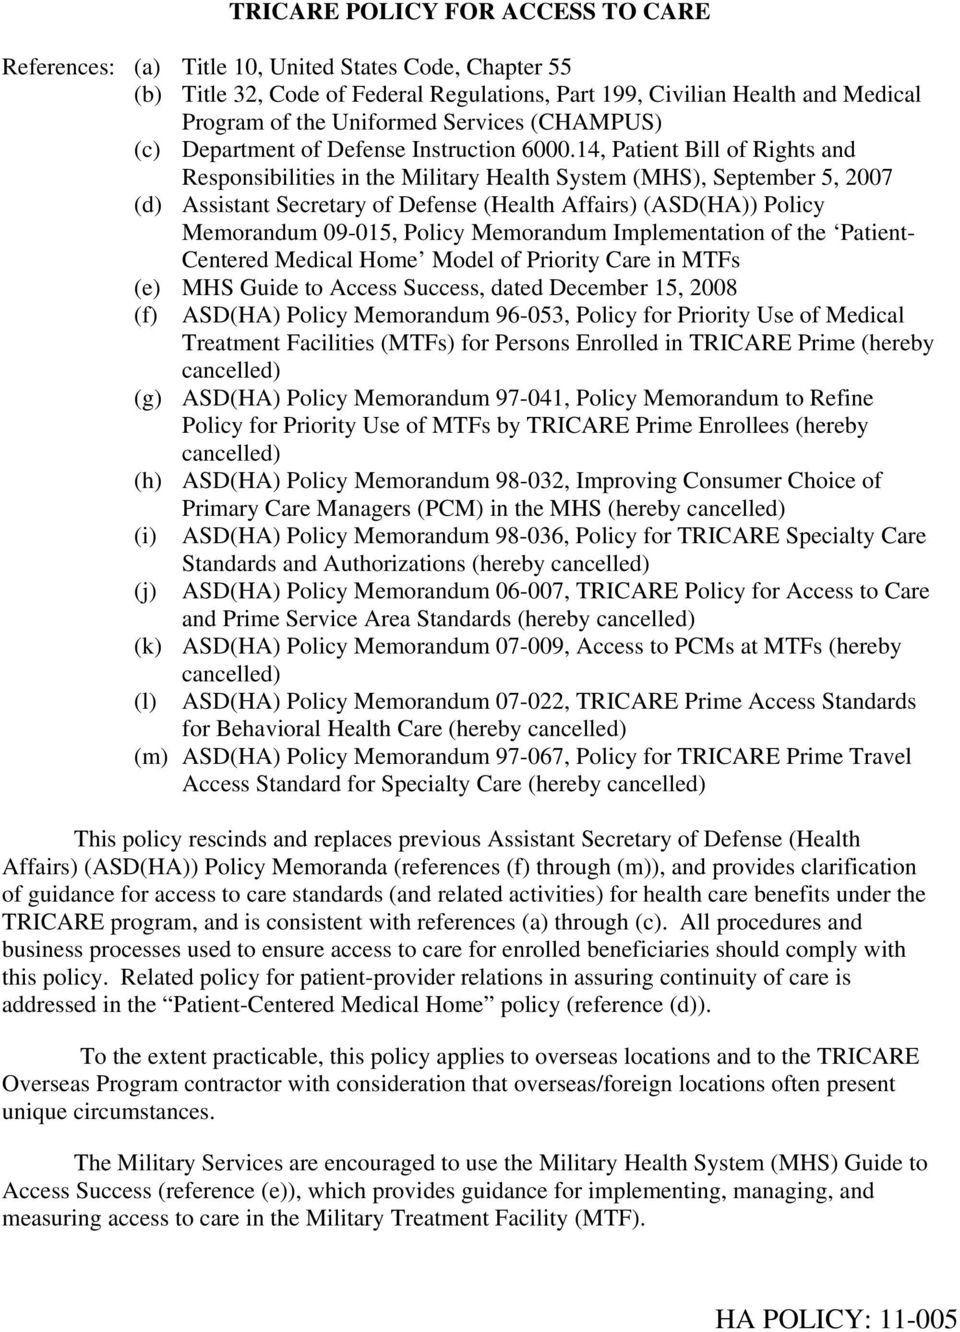 14, Patient Bill of Rights and Responsibilities in the Military Health System (MHS), September 5, 2007 (d) Assistant Secretary of Defense (Health Affairs) (ASD(HA)) Policy Memorandum 09-015, Policy